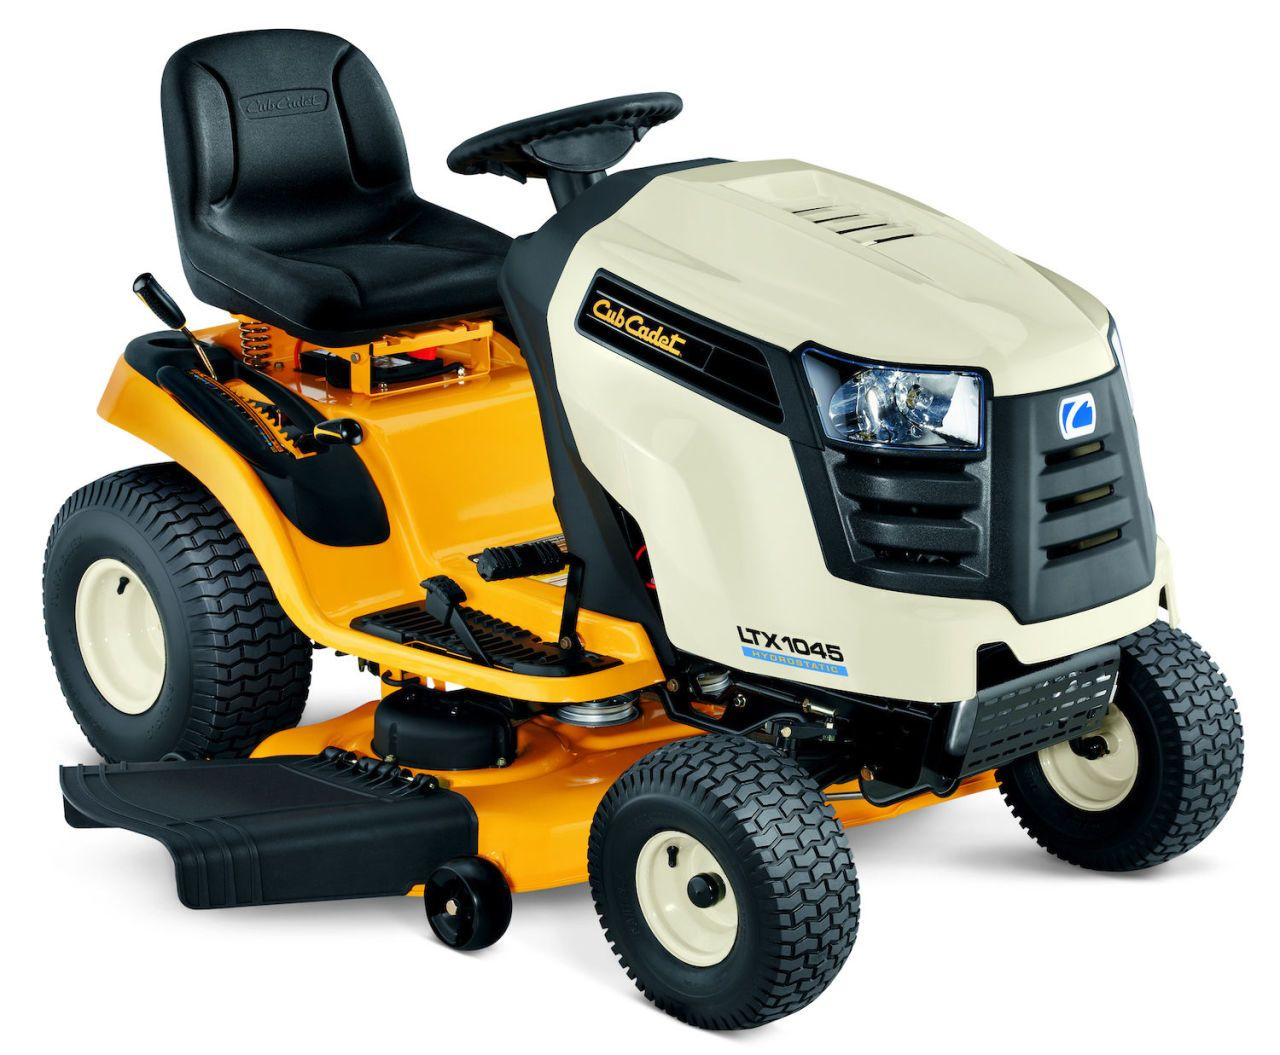 The 10 Best Riding Mowers To Shape Up Your Lawn This Season Best Riding Lawn Mower Electric Riding Lawn Mower Riding Lawn Mowers